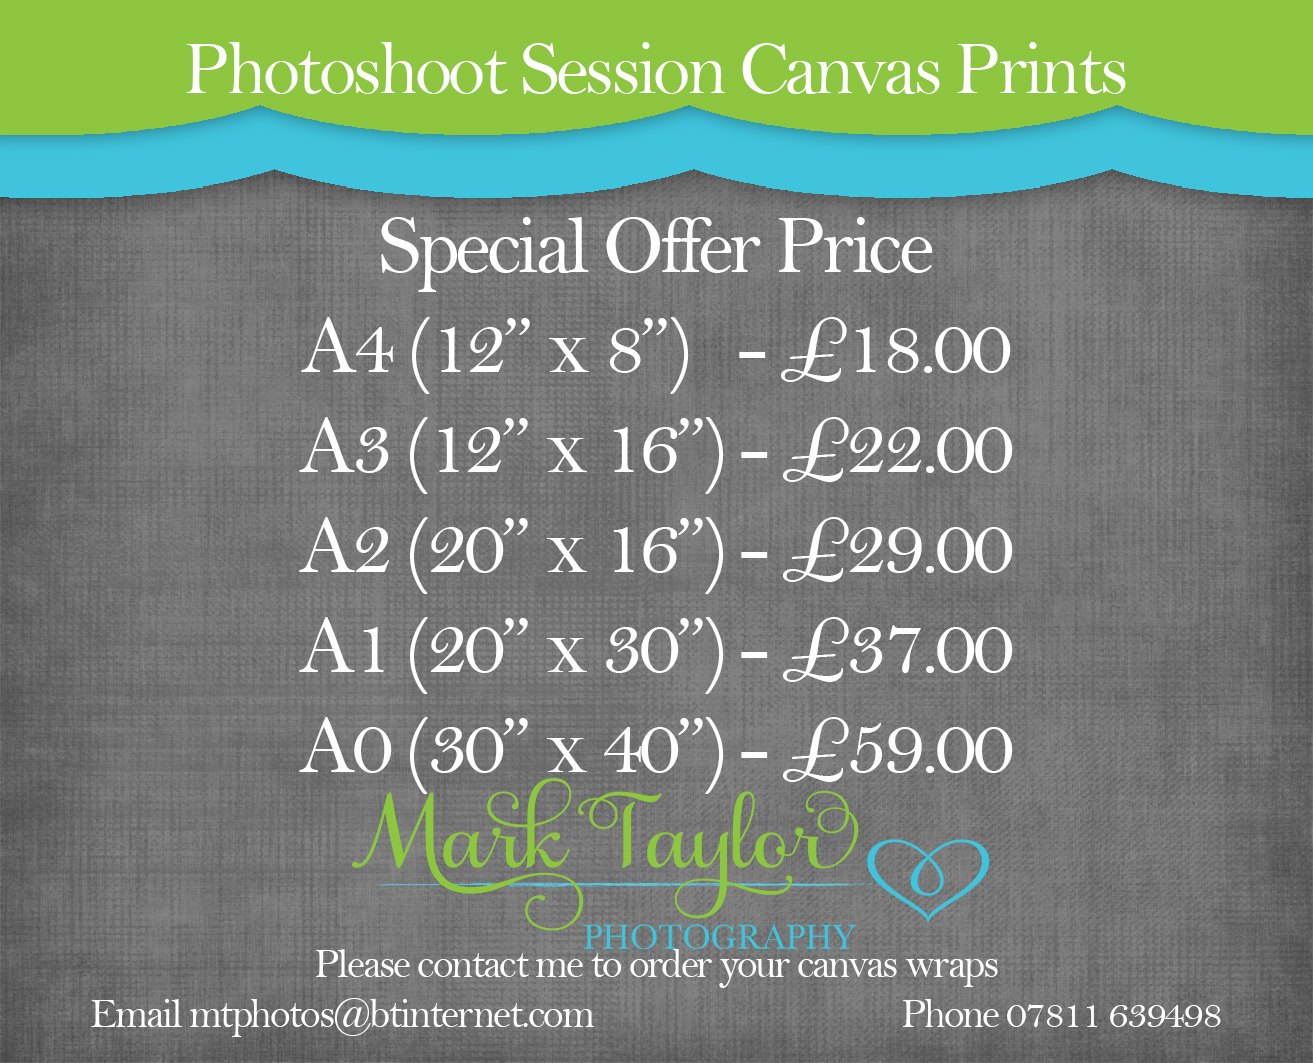 Photoshoot Session Canvas Prints, Weston Super Mare,